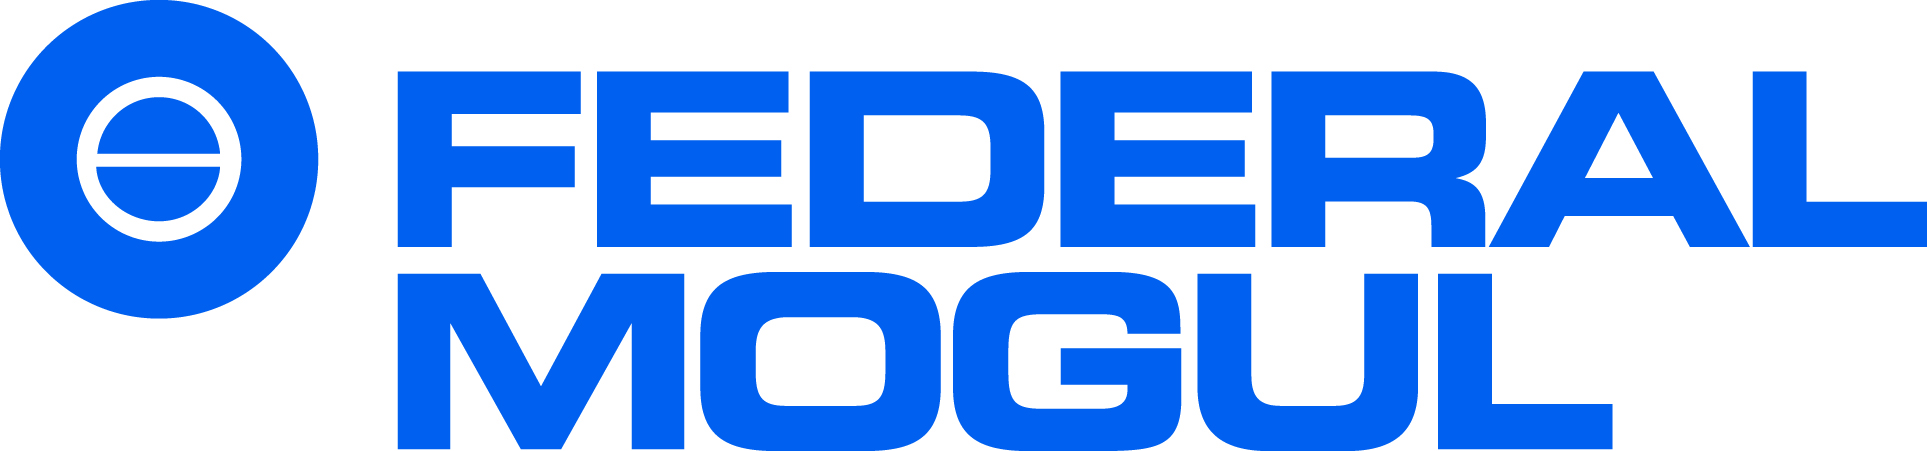 GARAGE OCCRE - logo Federal Mogul